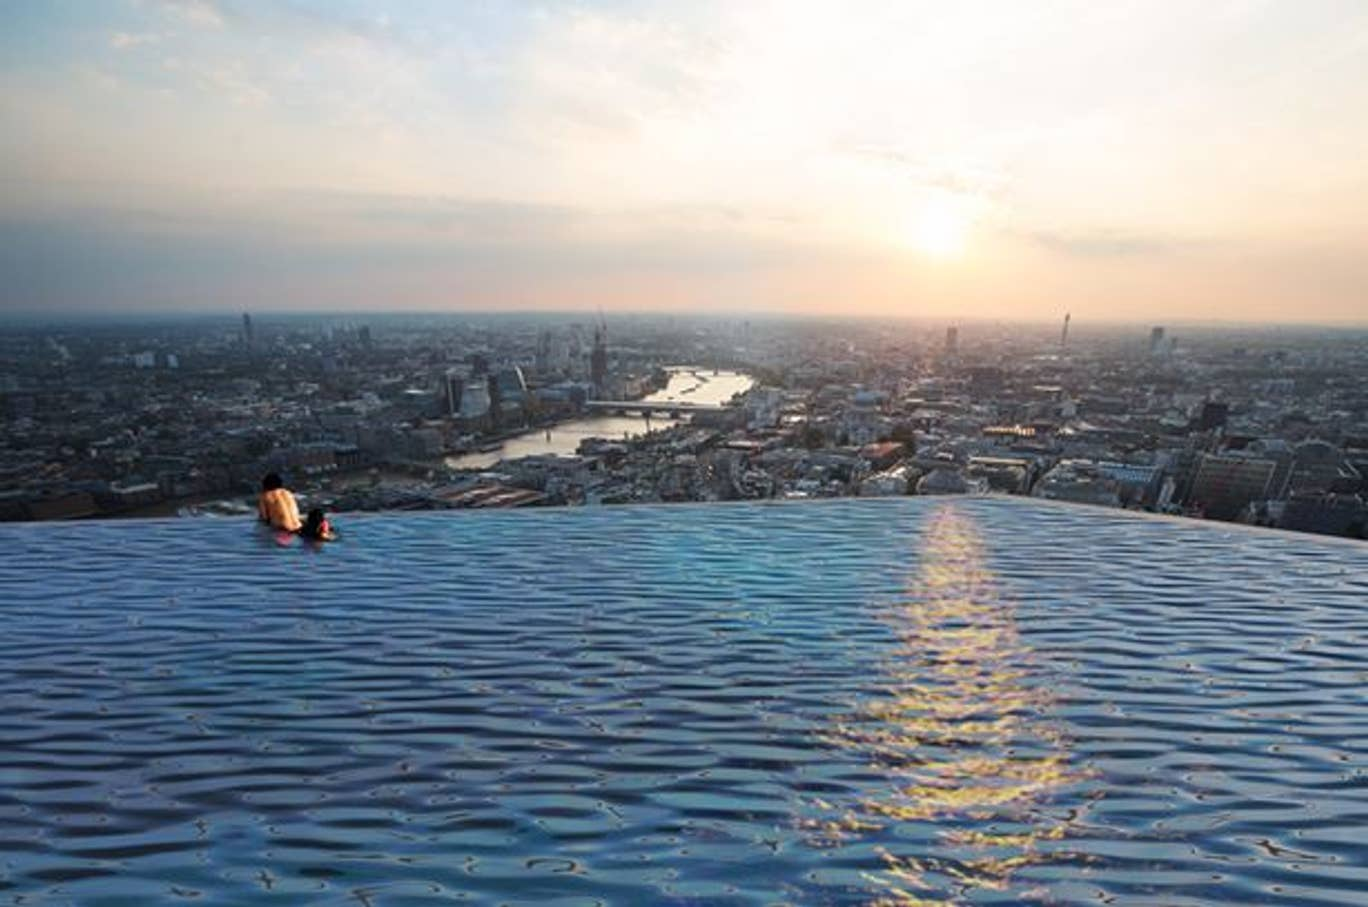 London to get 'death-defying' infinity pool with 360-degree views